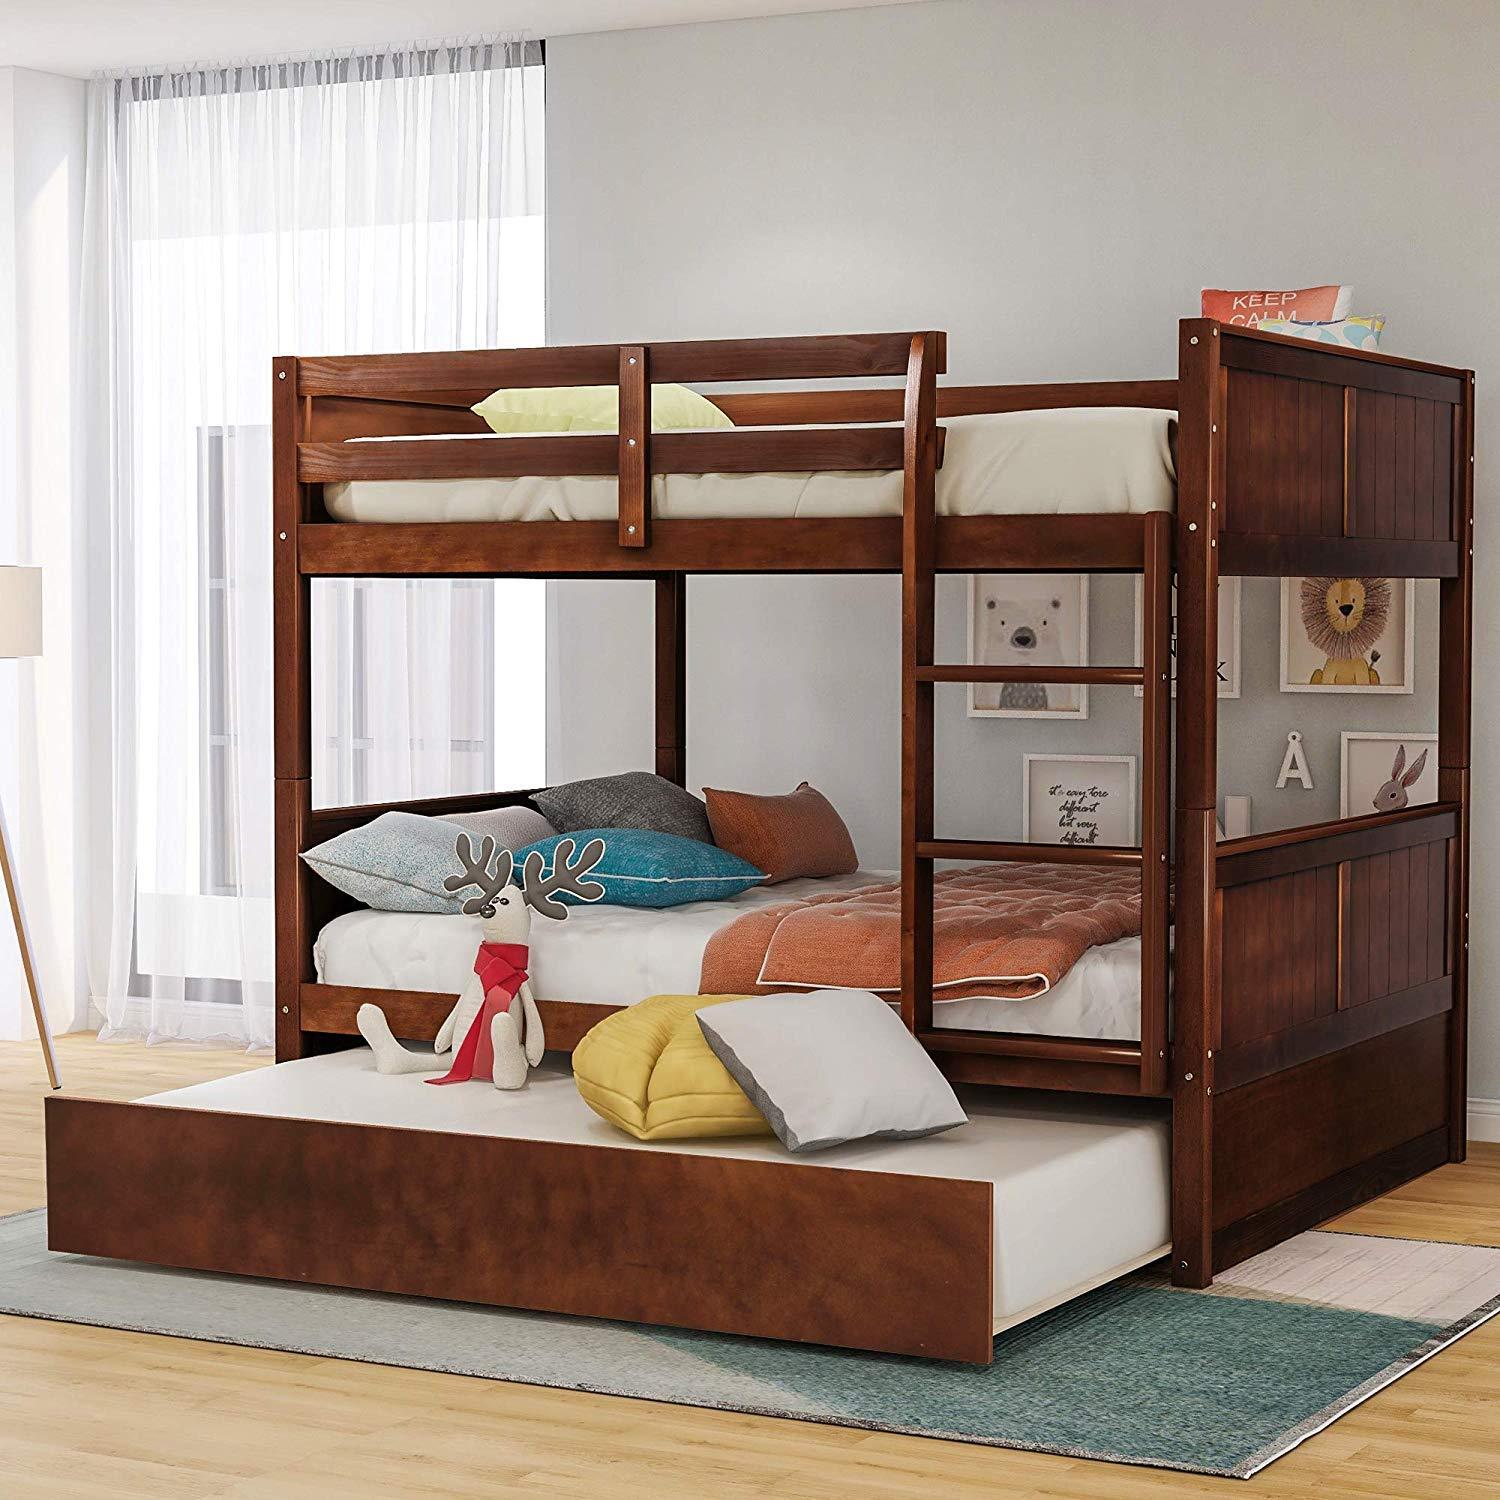 MIERES Trundle,Solid Wood Bunk Bed Frame Convertible Full Size with Rails and Ladder for Adults, Walnut-LP000050AAD